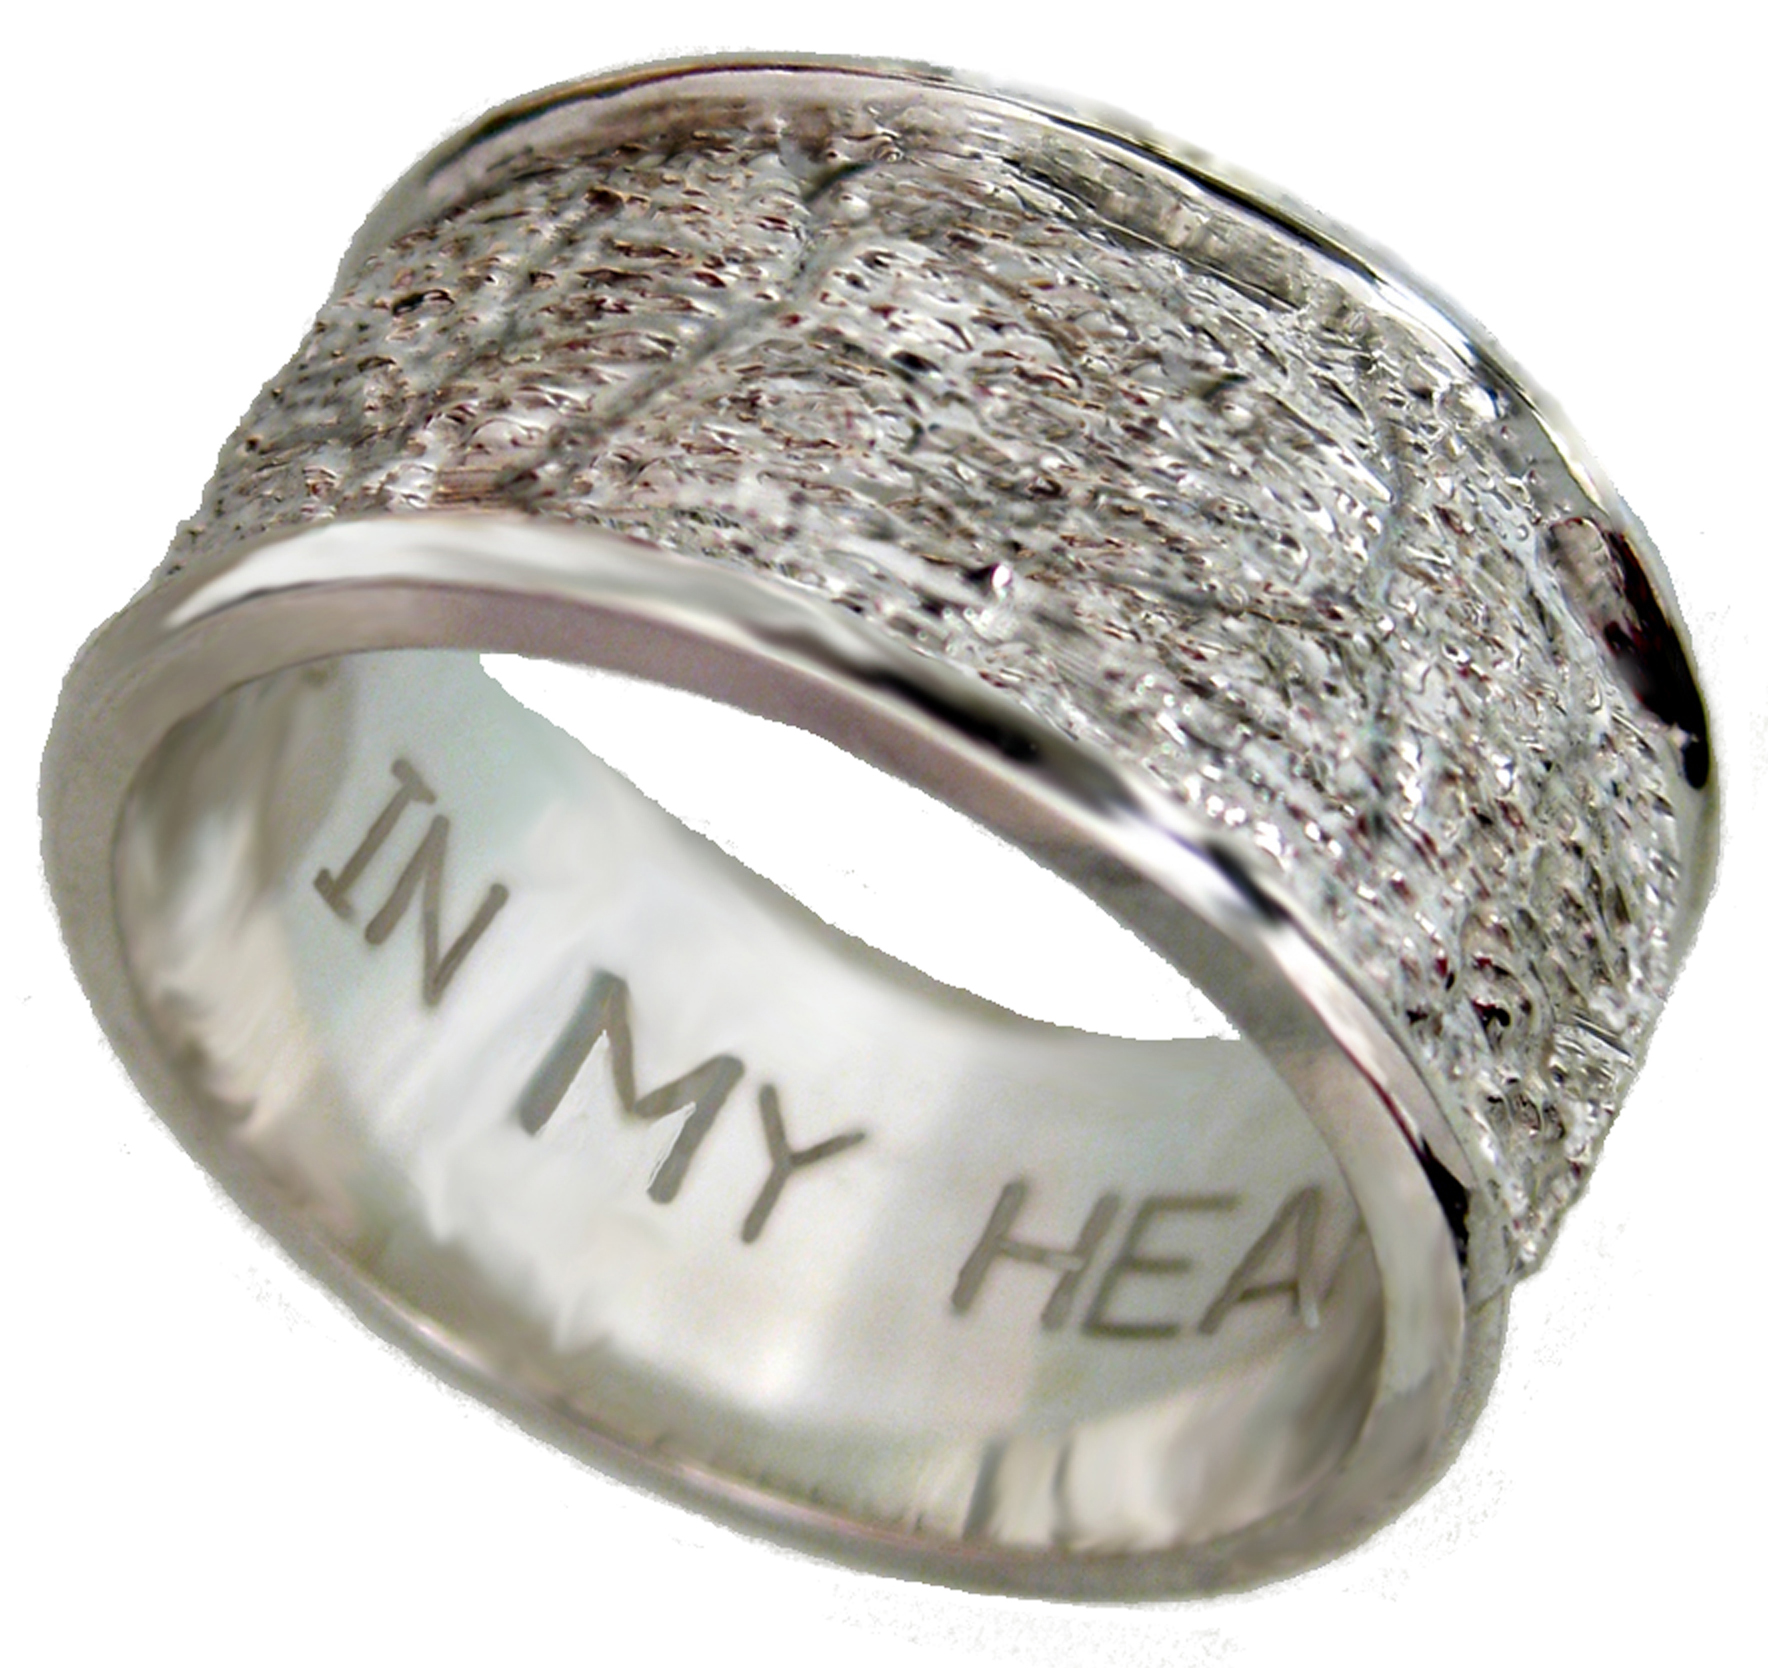 rings com steel countrysearch and cremation stainless china suppliers cn high polished manufacturers engravable alibaba on